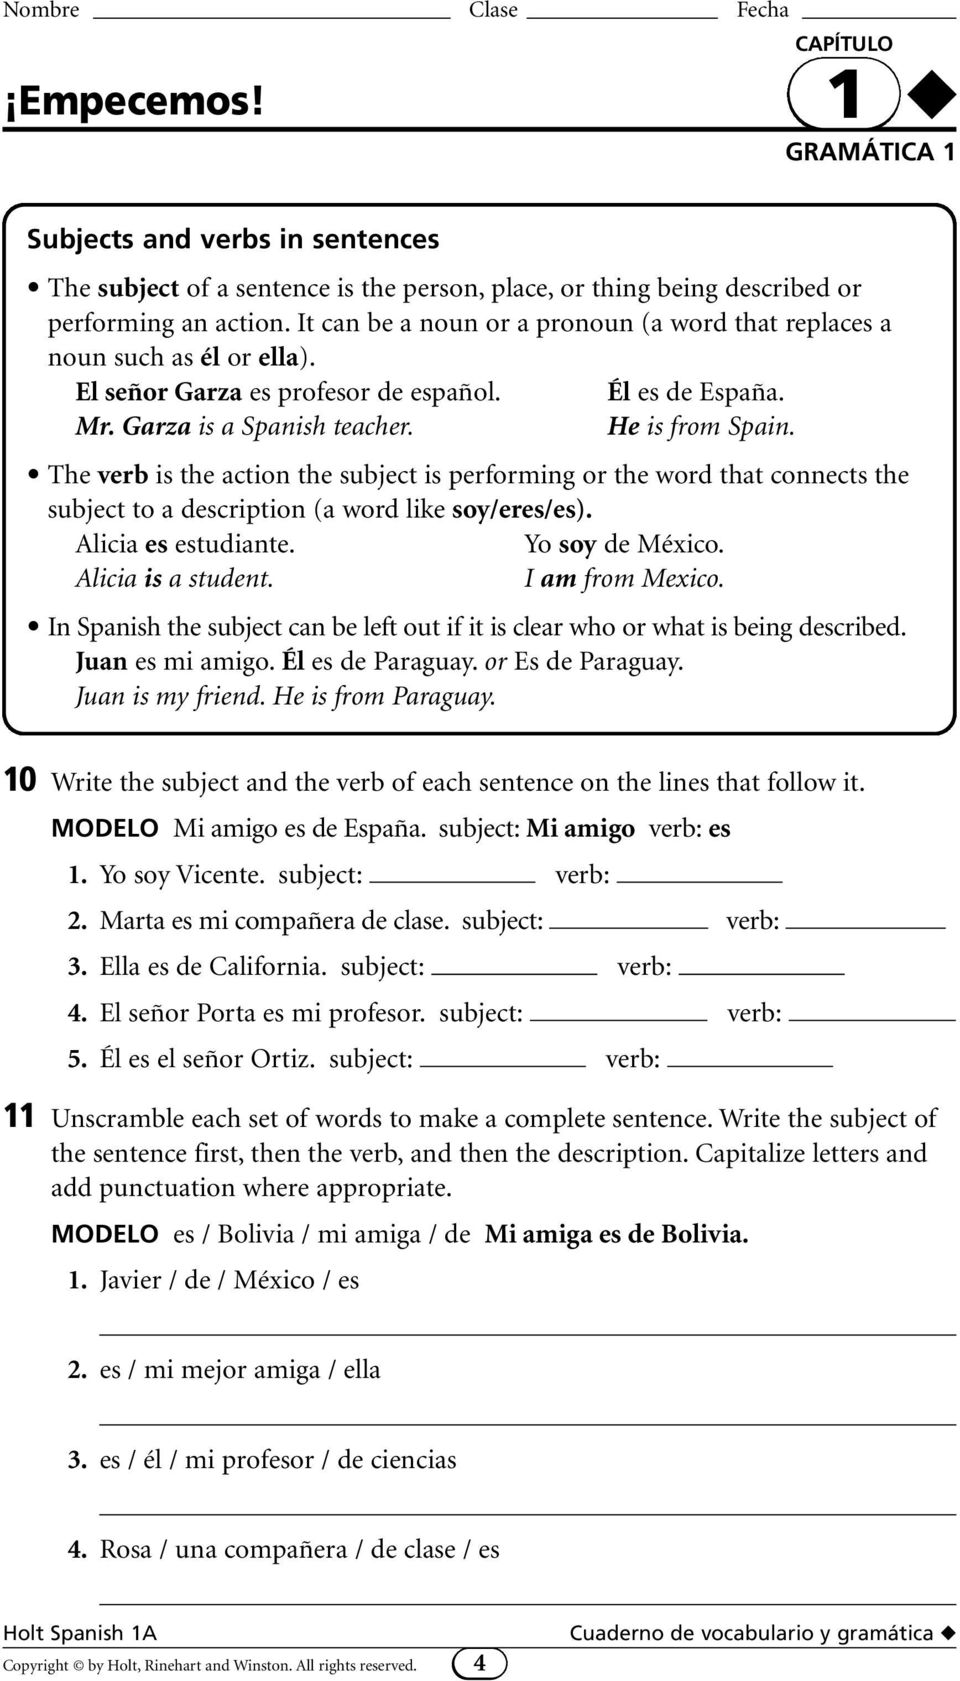 The verb is the action the subject is performing or the word that connects the subject to a description (a word like soy/eres/es). Alicia es estudiante. Yo soy de México. Alicia is a student.